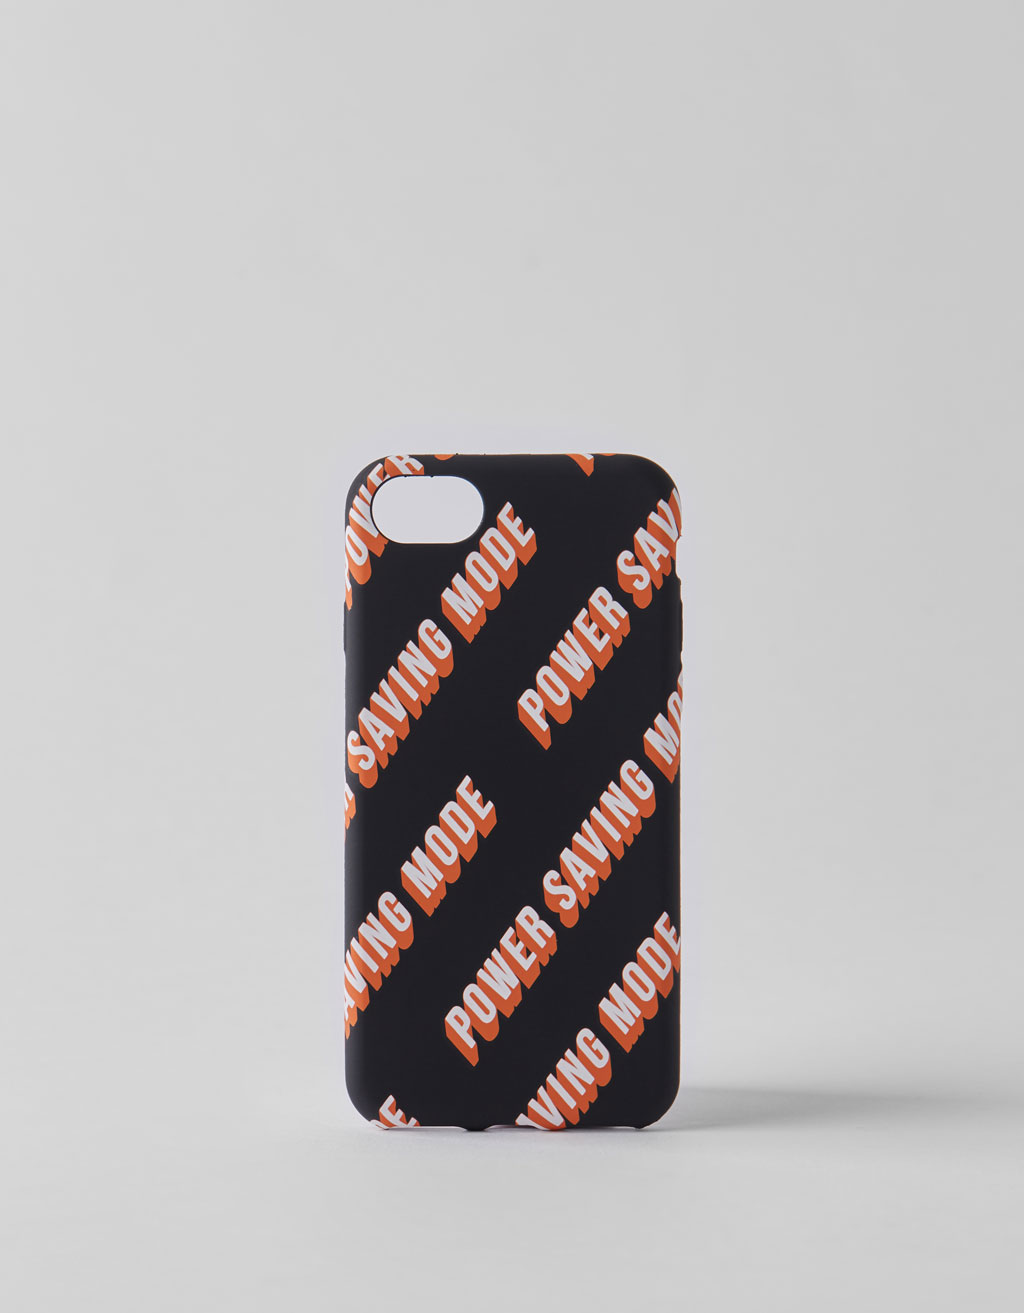 Carcasa estampada iPhone 6 / 7 / 8